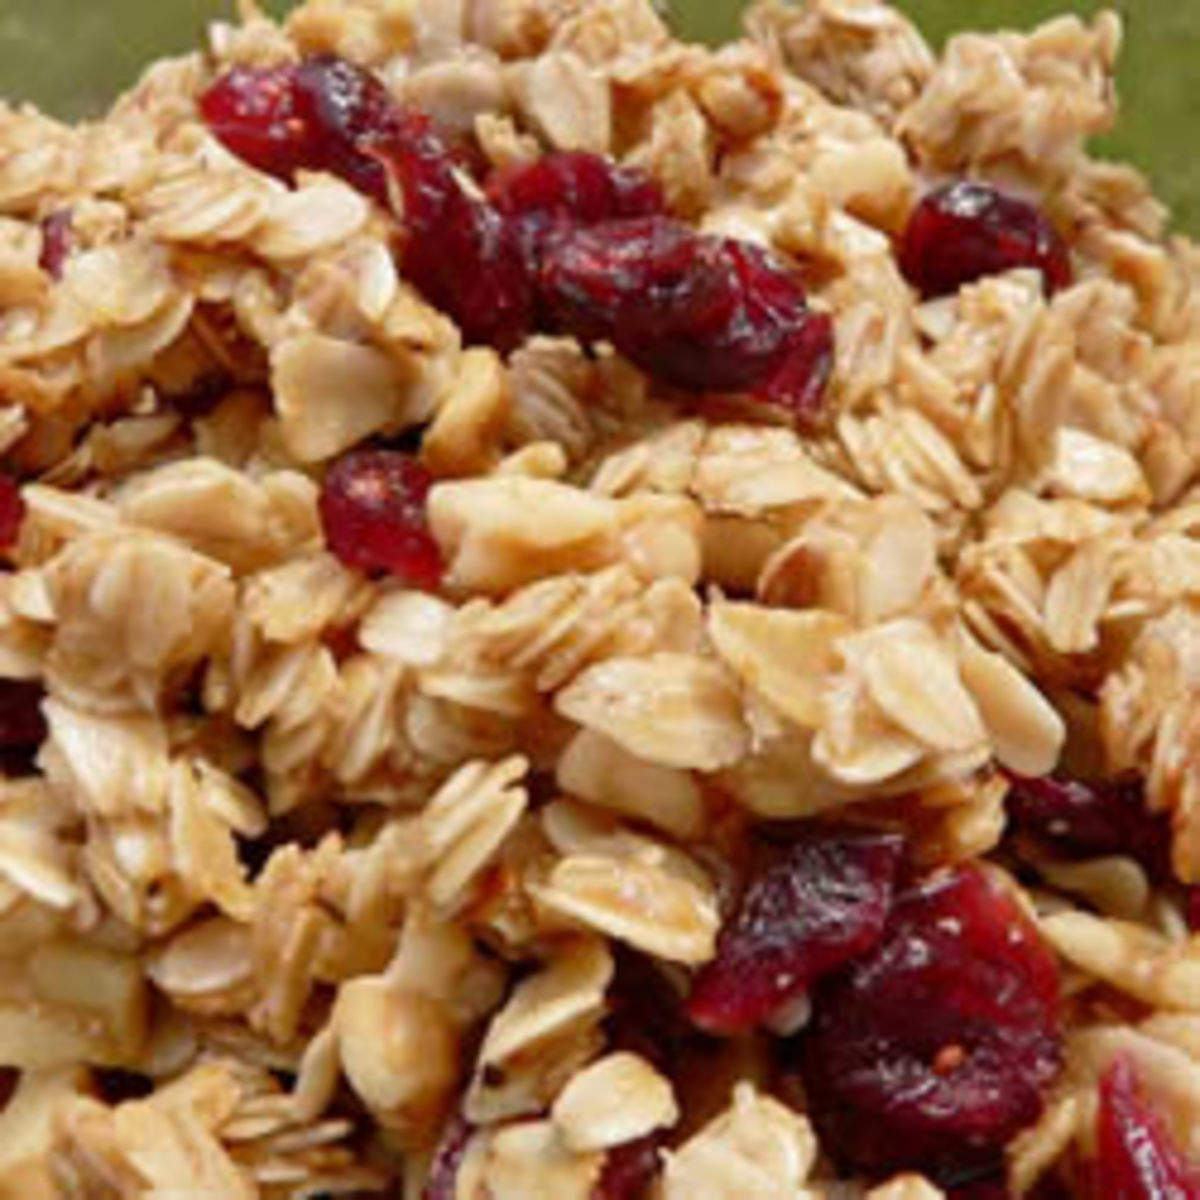 This delicious stovetop granola begins with toasting oats in olive oil and is sweetened with brown sugar, honey and dried cranberries.